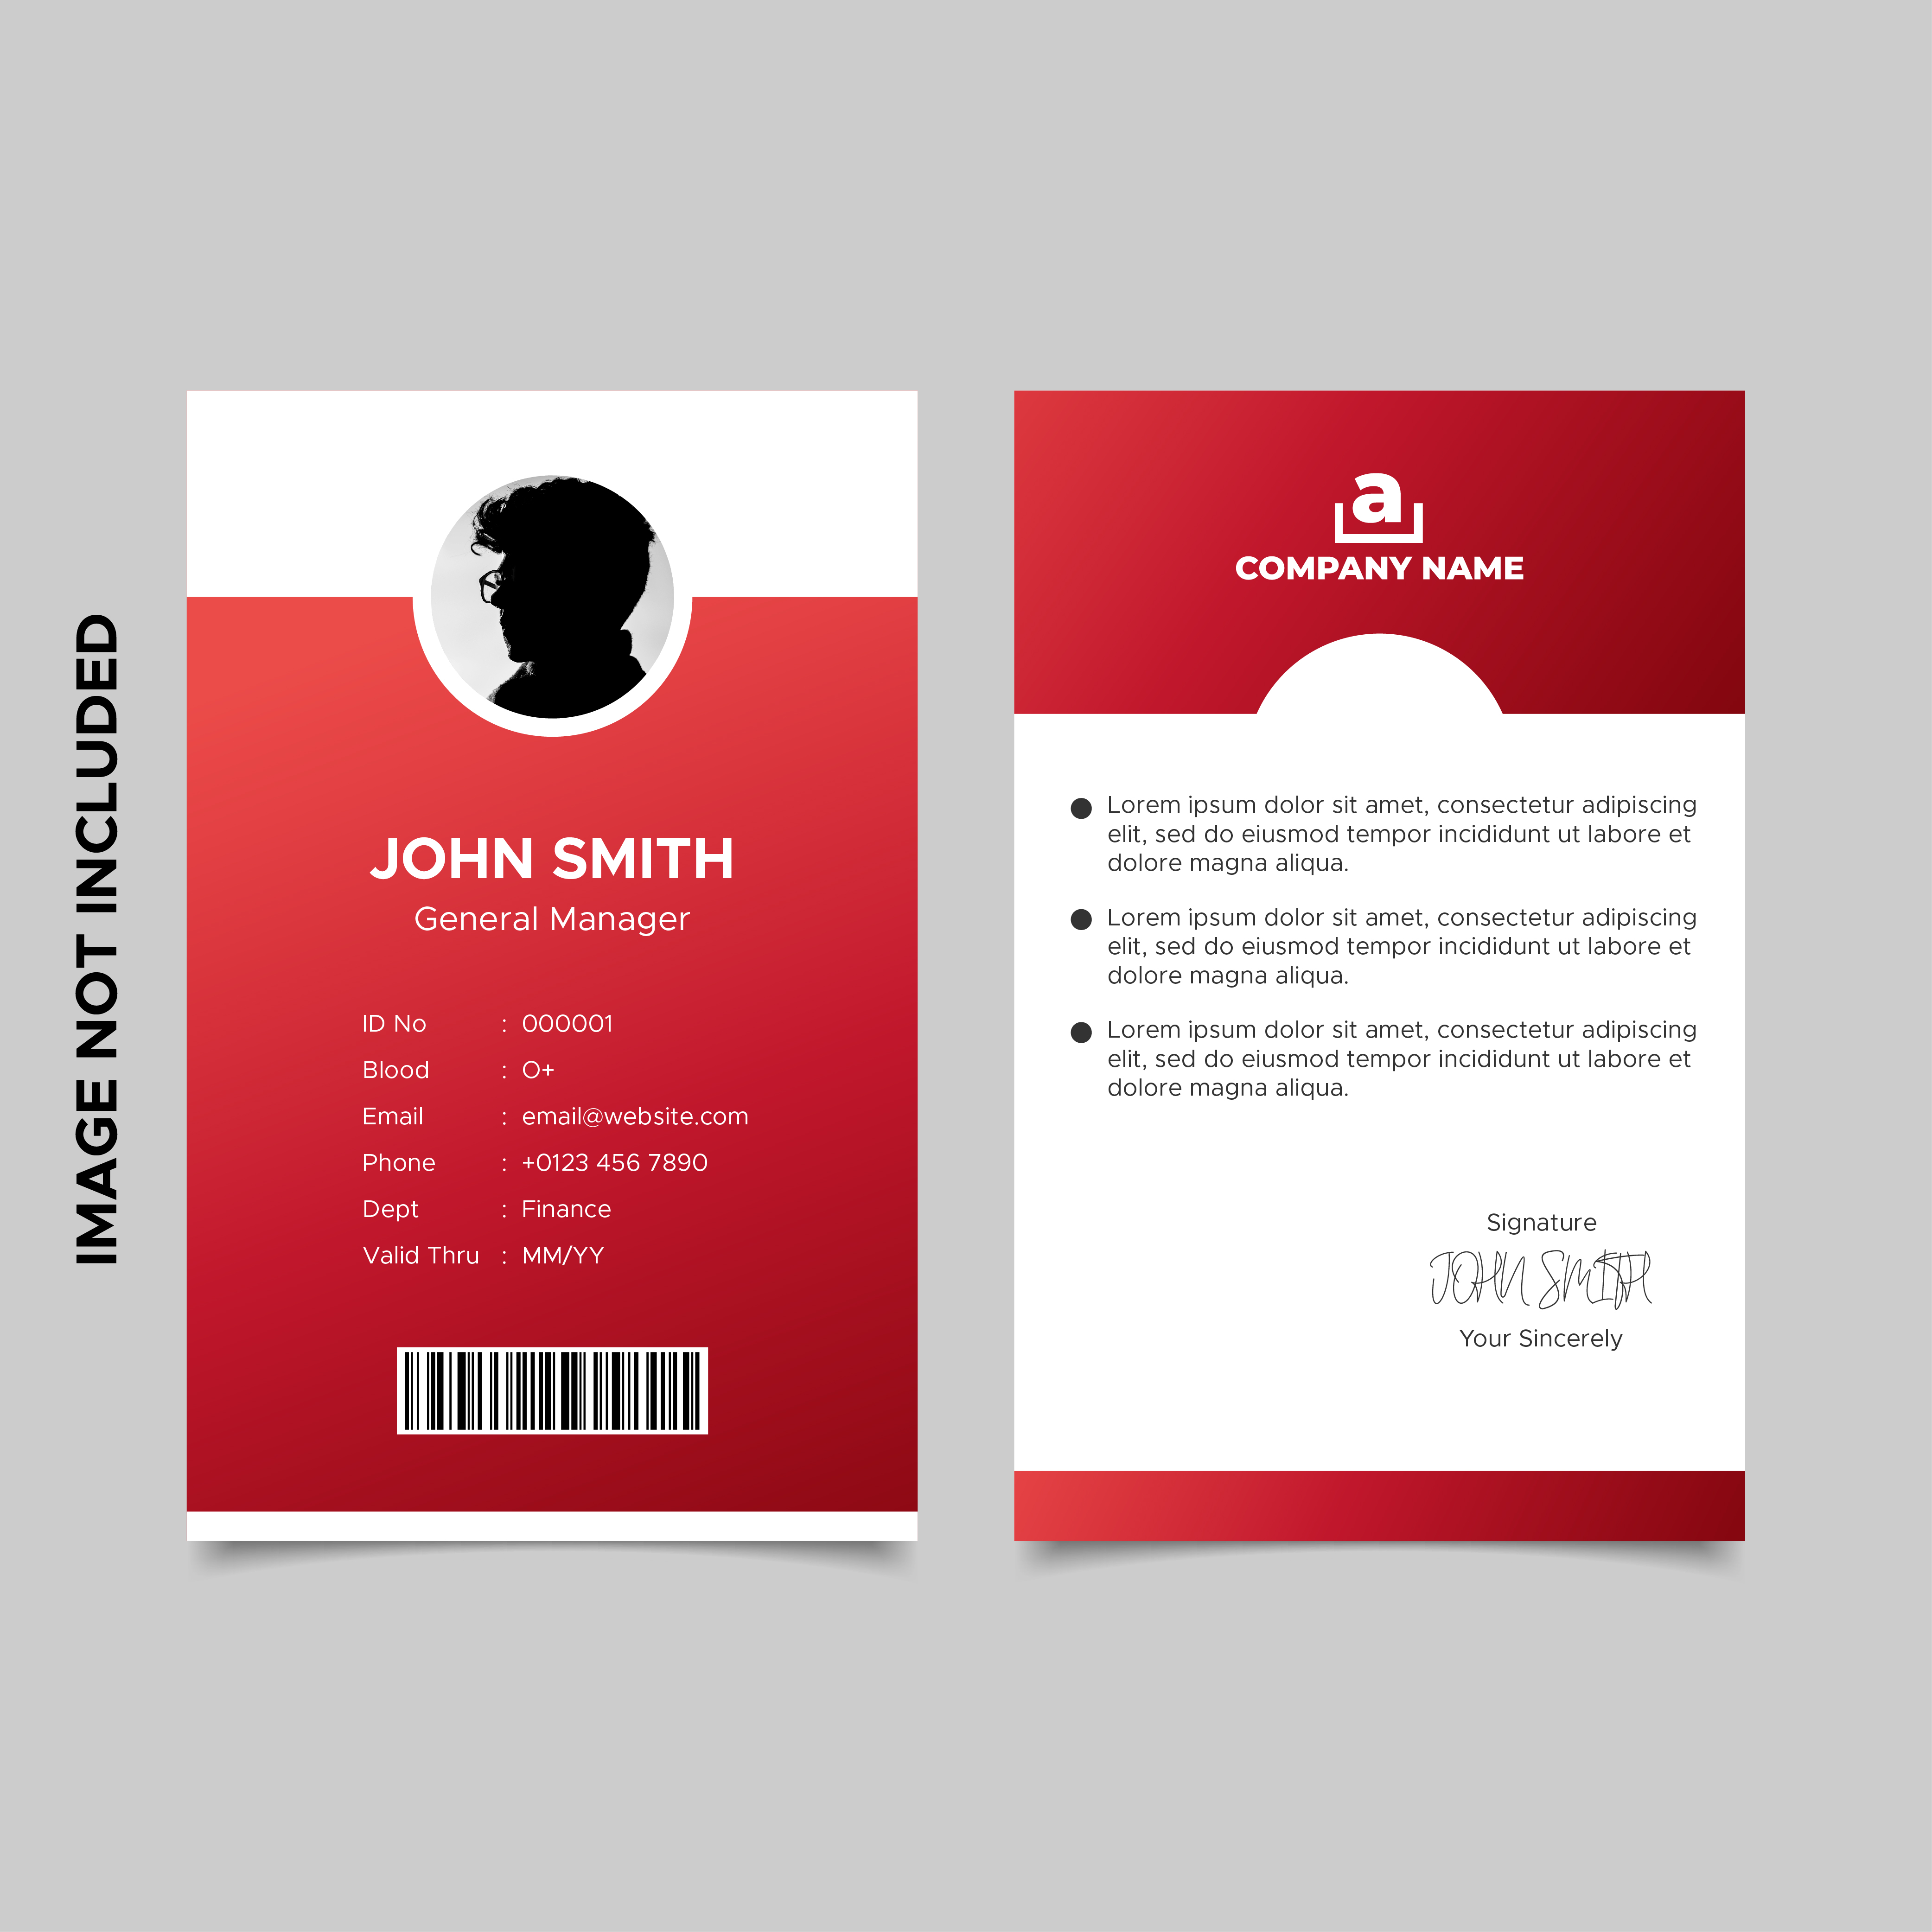 Red Employee Id Card Template 21 Vector Art at Vecteezy In Template For Id Card Free Download